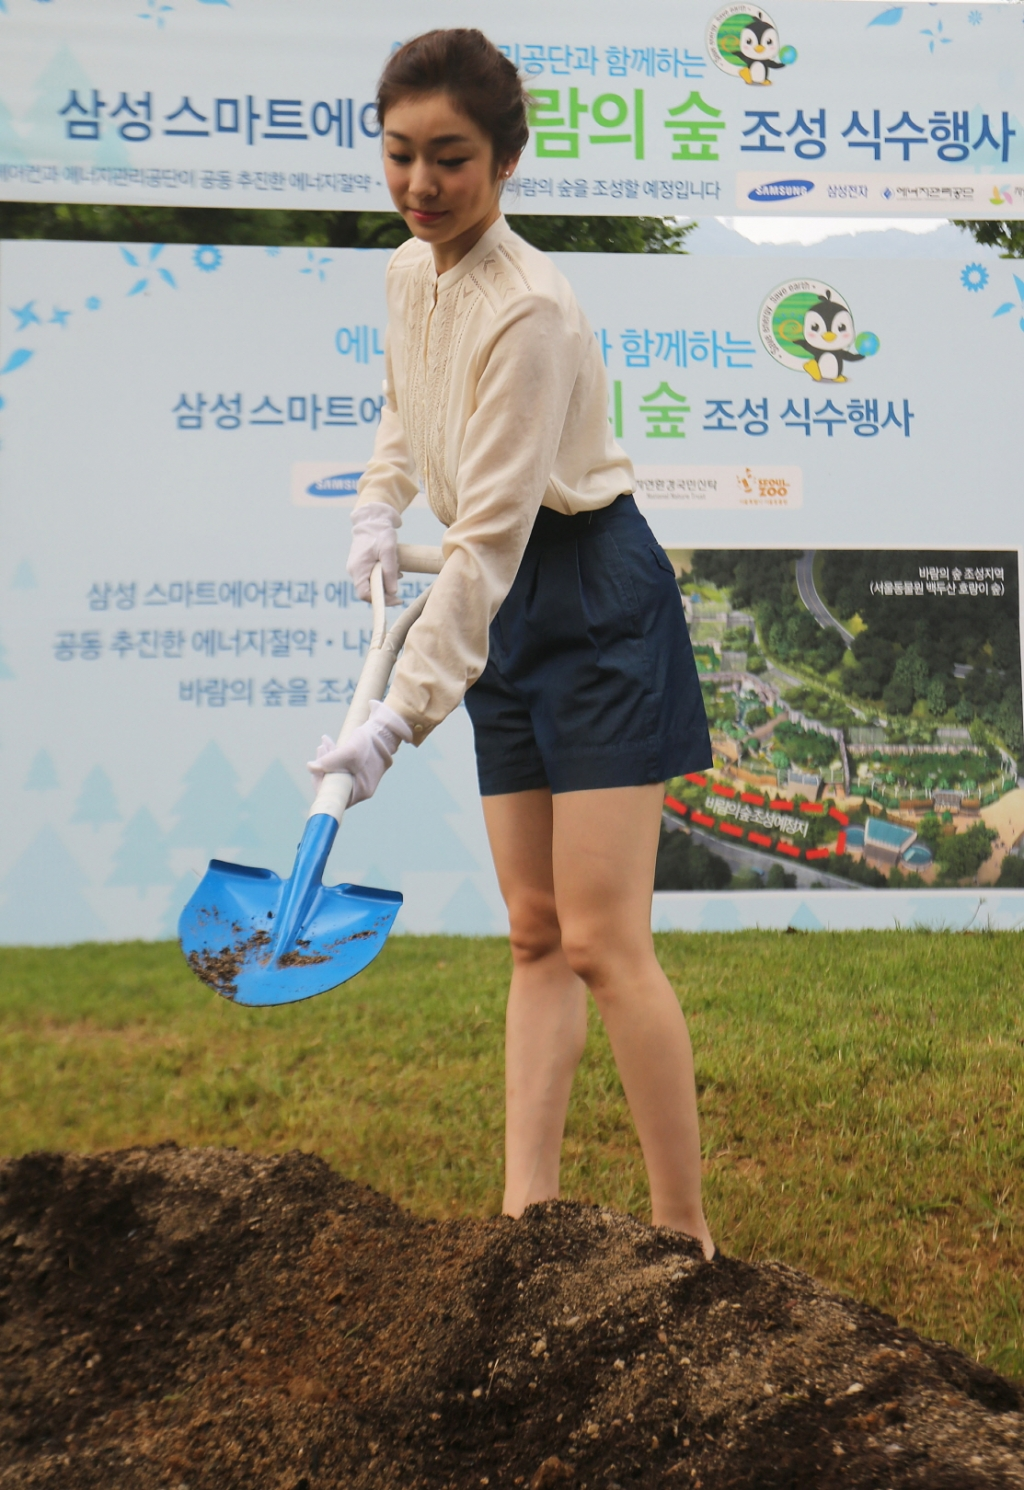 Samsung Smart A/C Joins Hands with KEMCO to Build Urban Forest